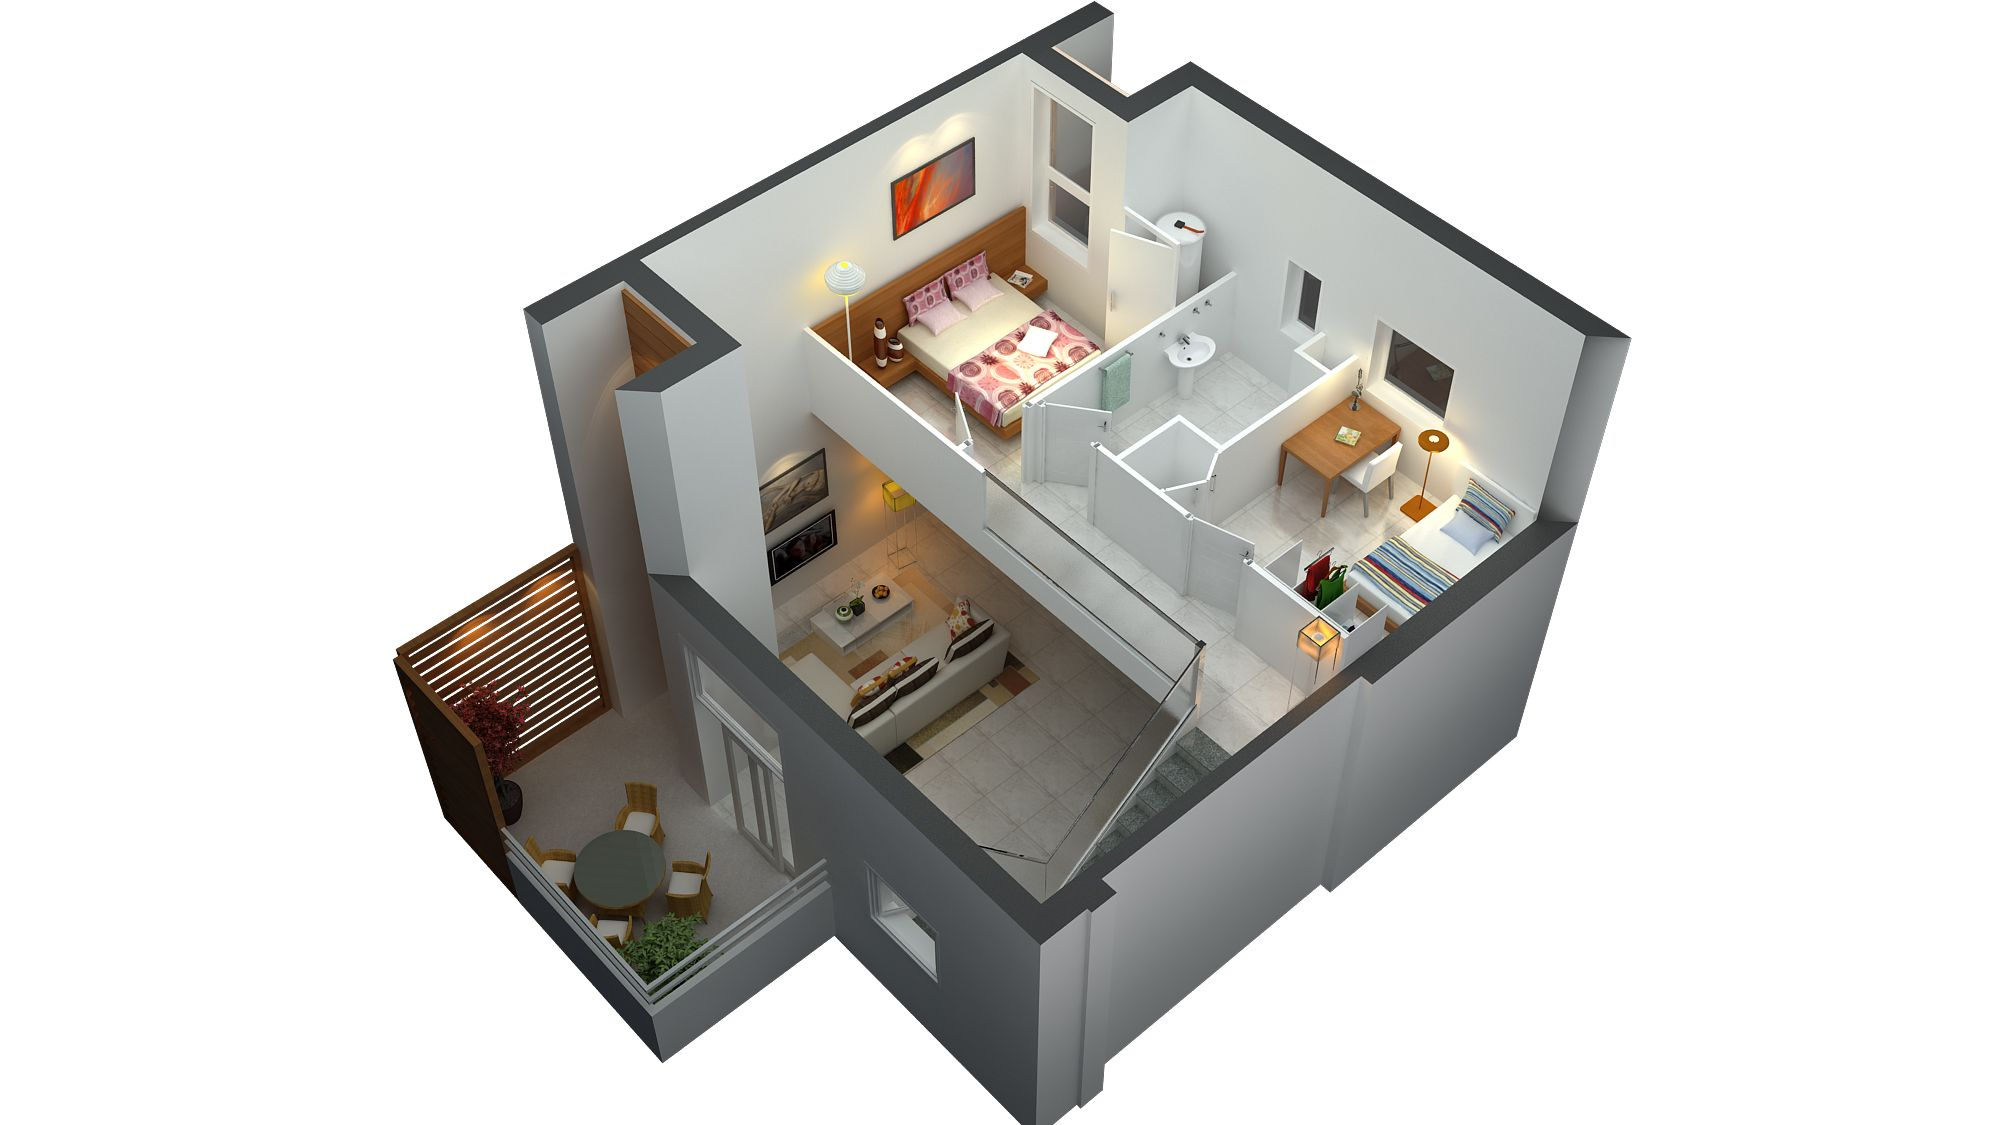 3d floor plan small house plans pinterest 3d for Small house plan design 3d